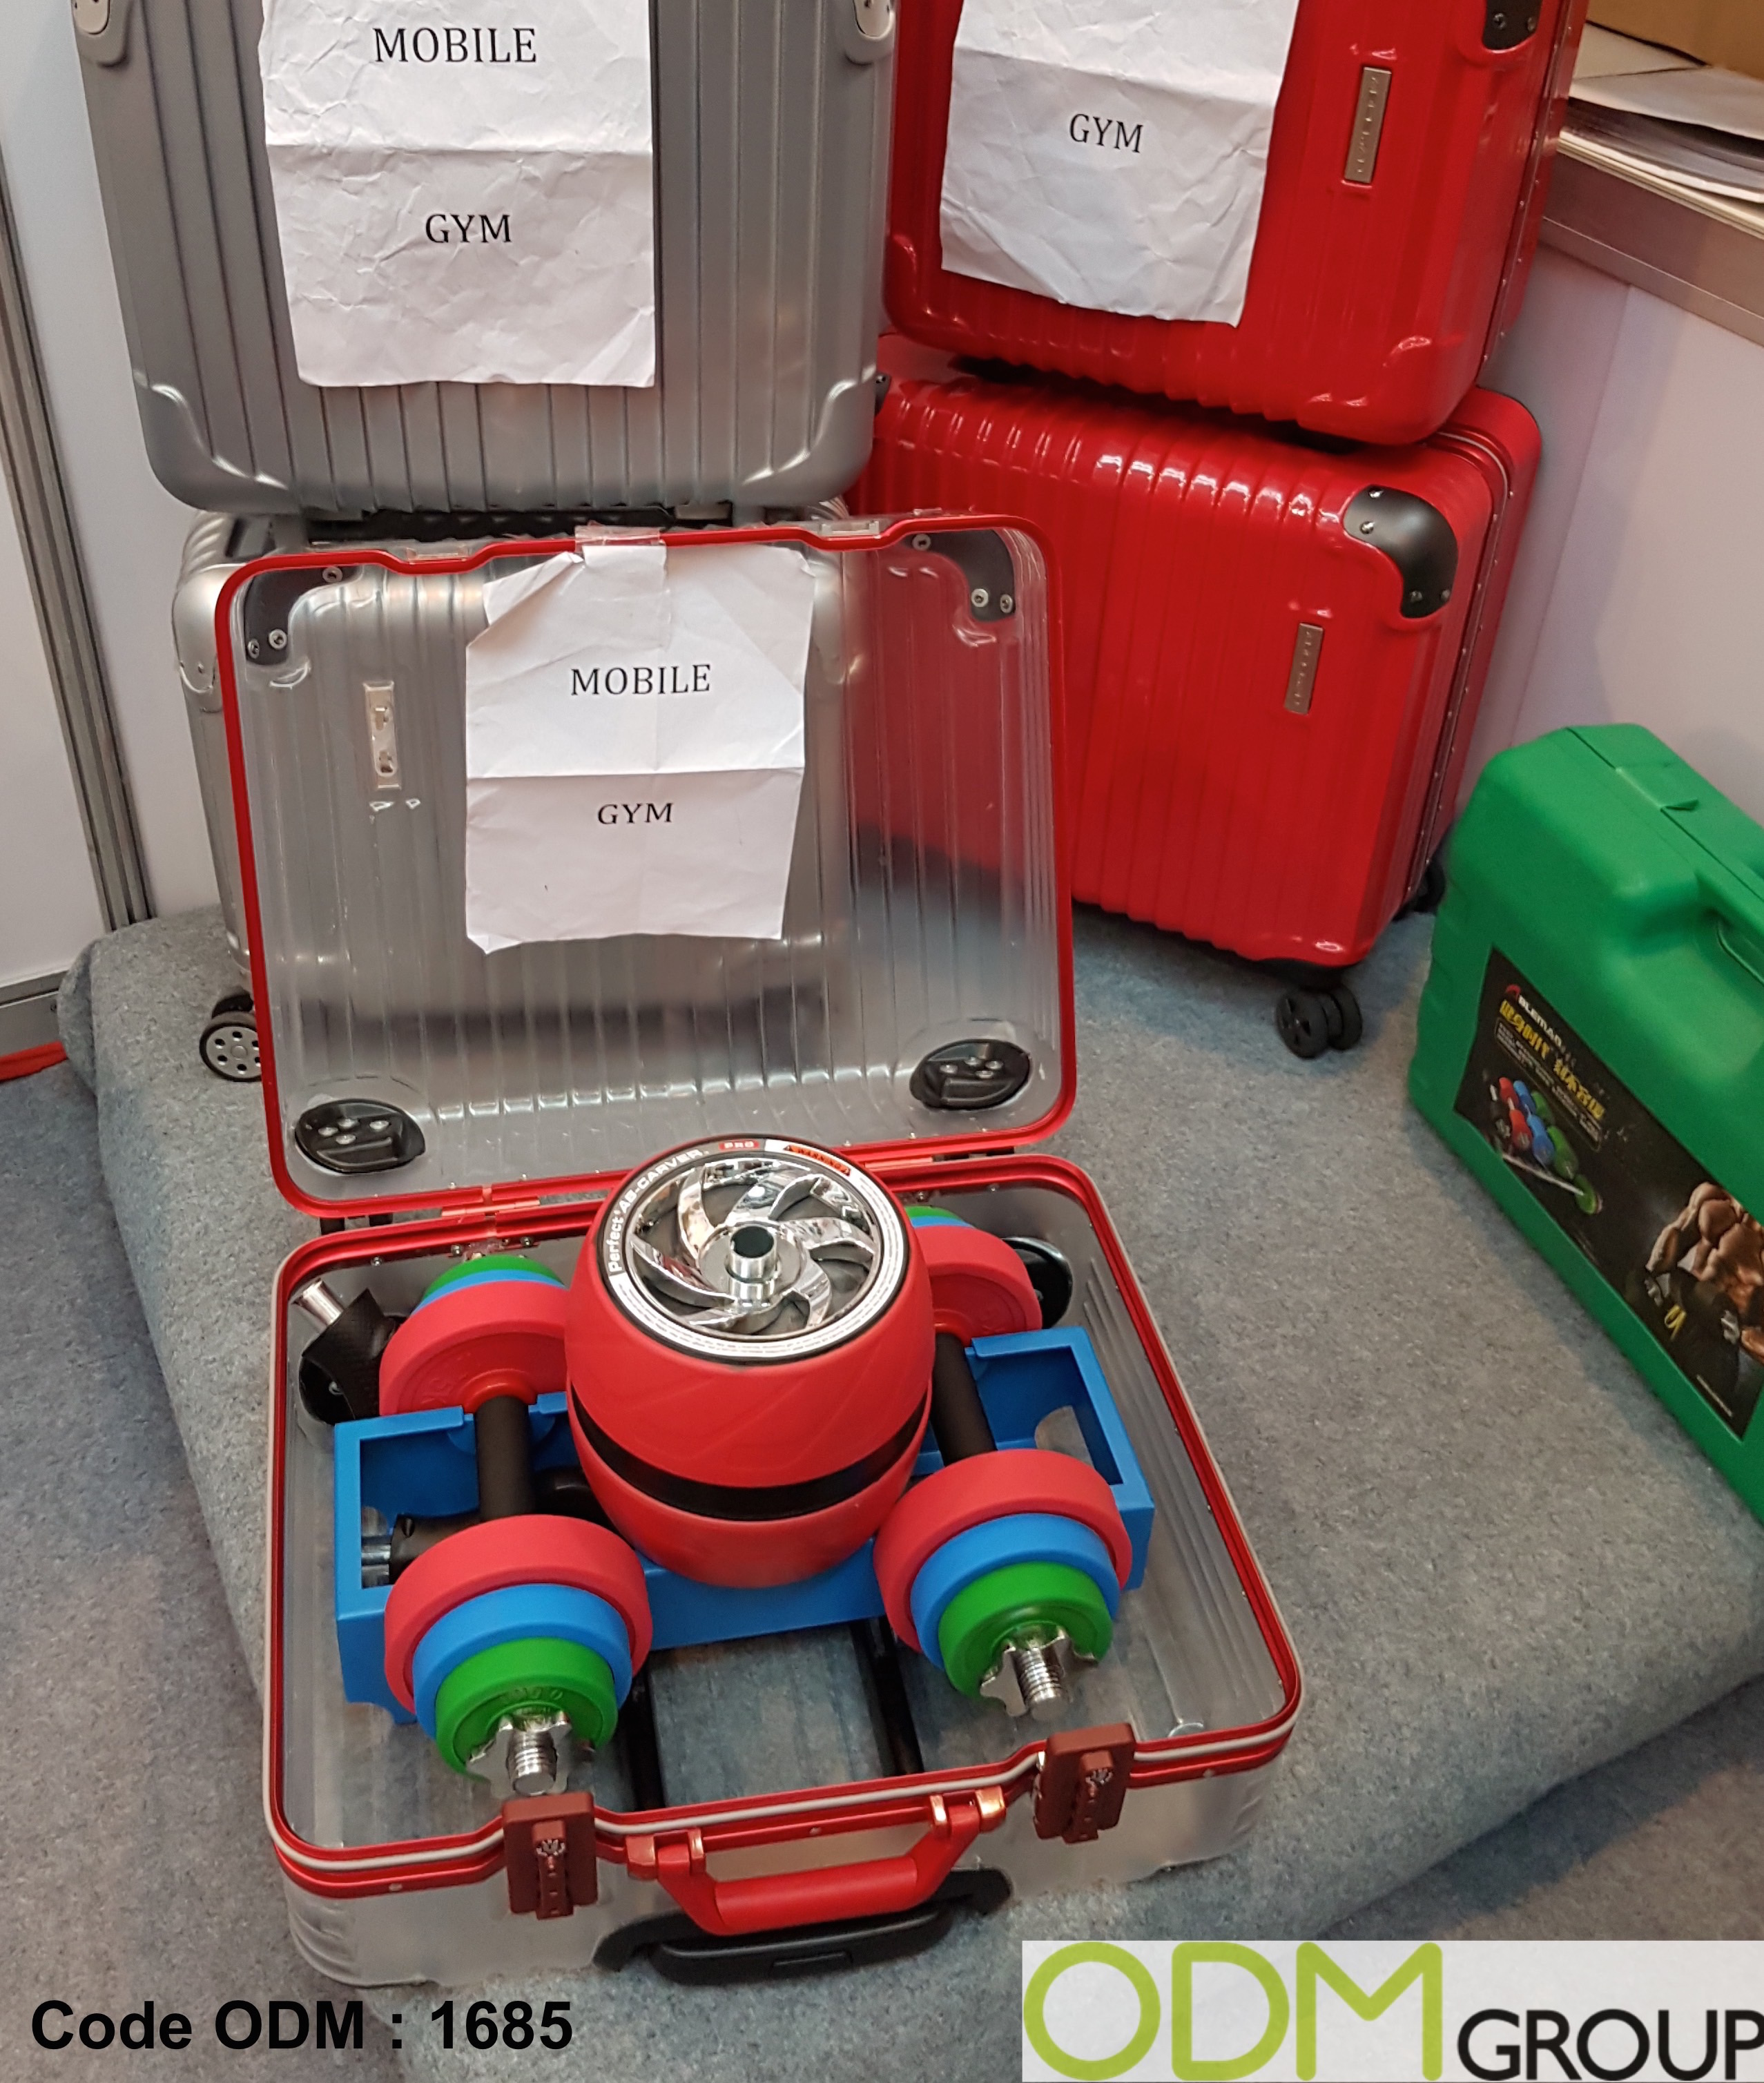 Handy Sports Promo – Mobile Gym Kit in Suitcase